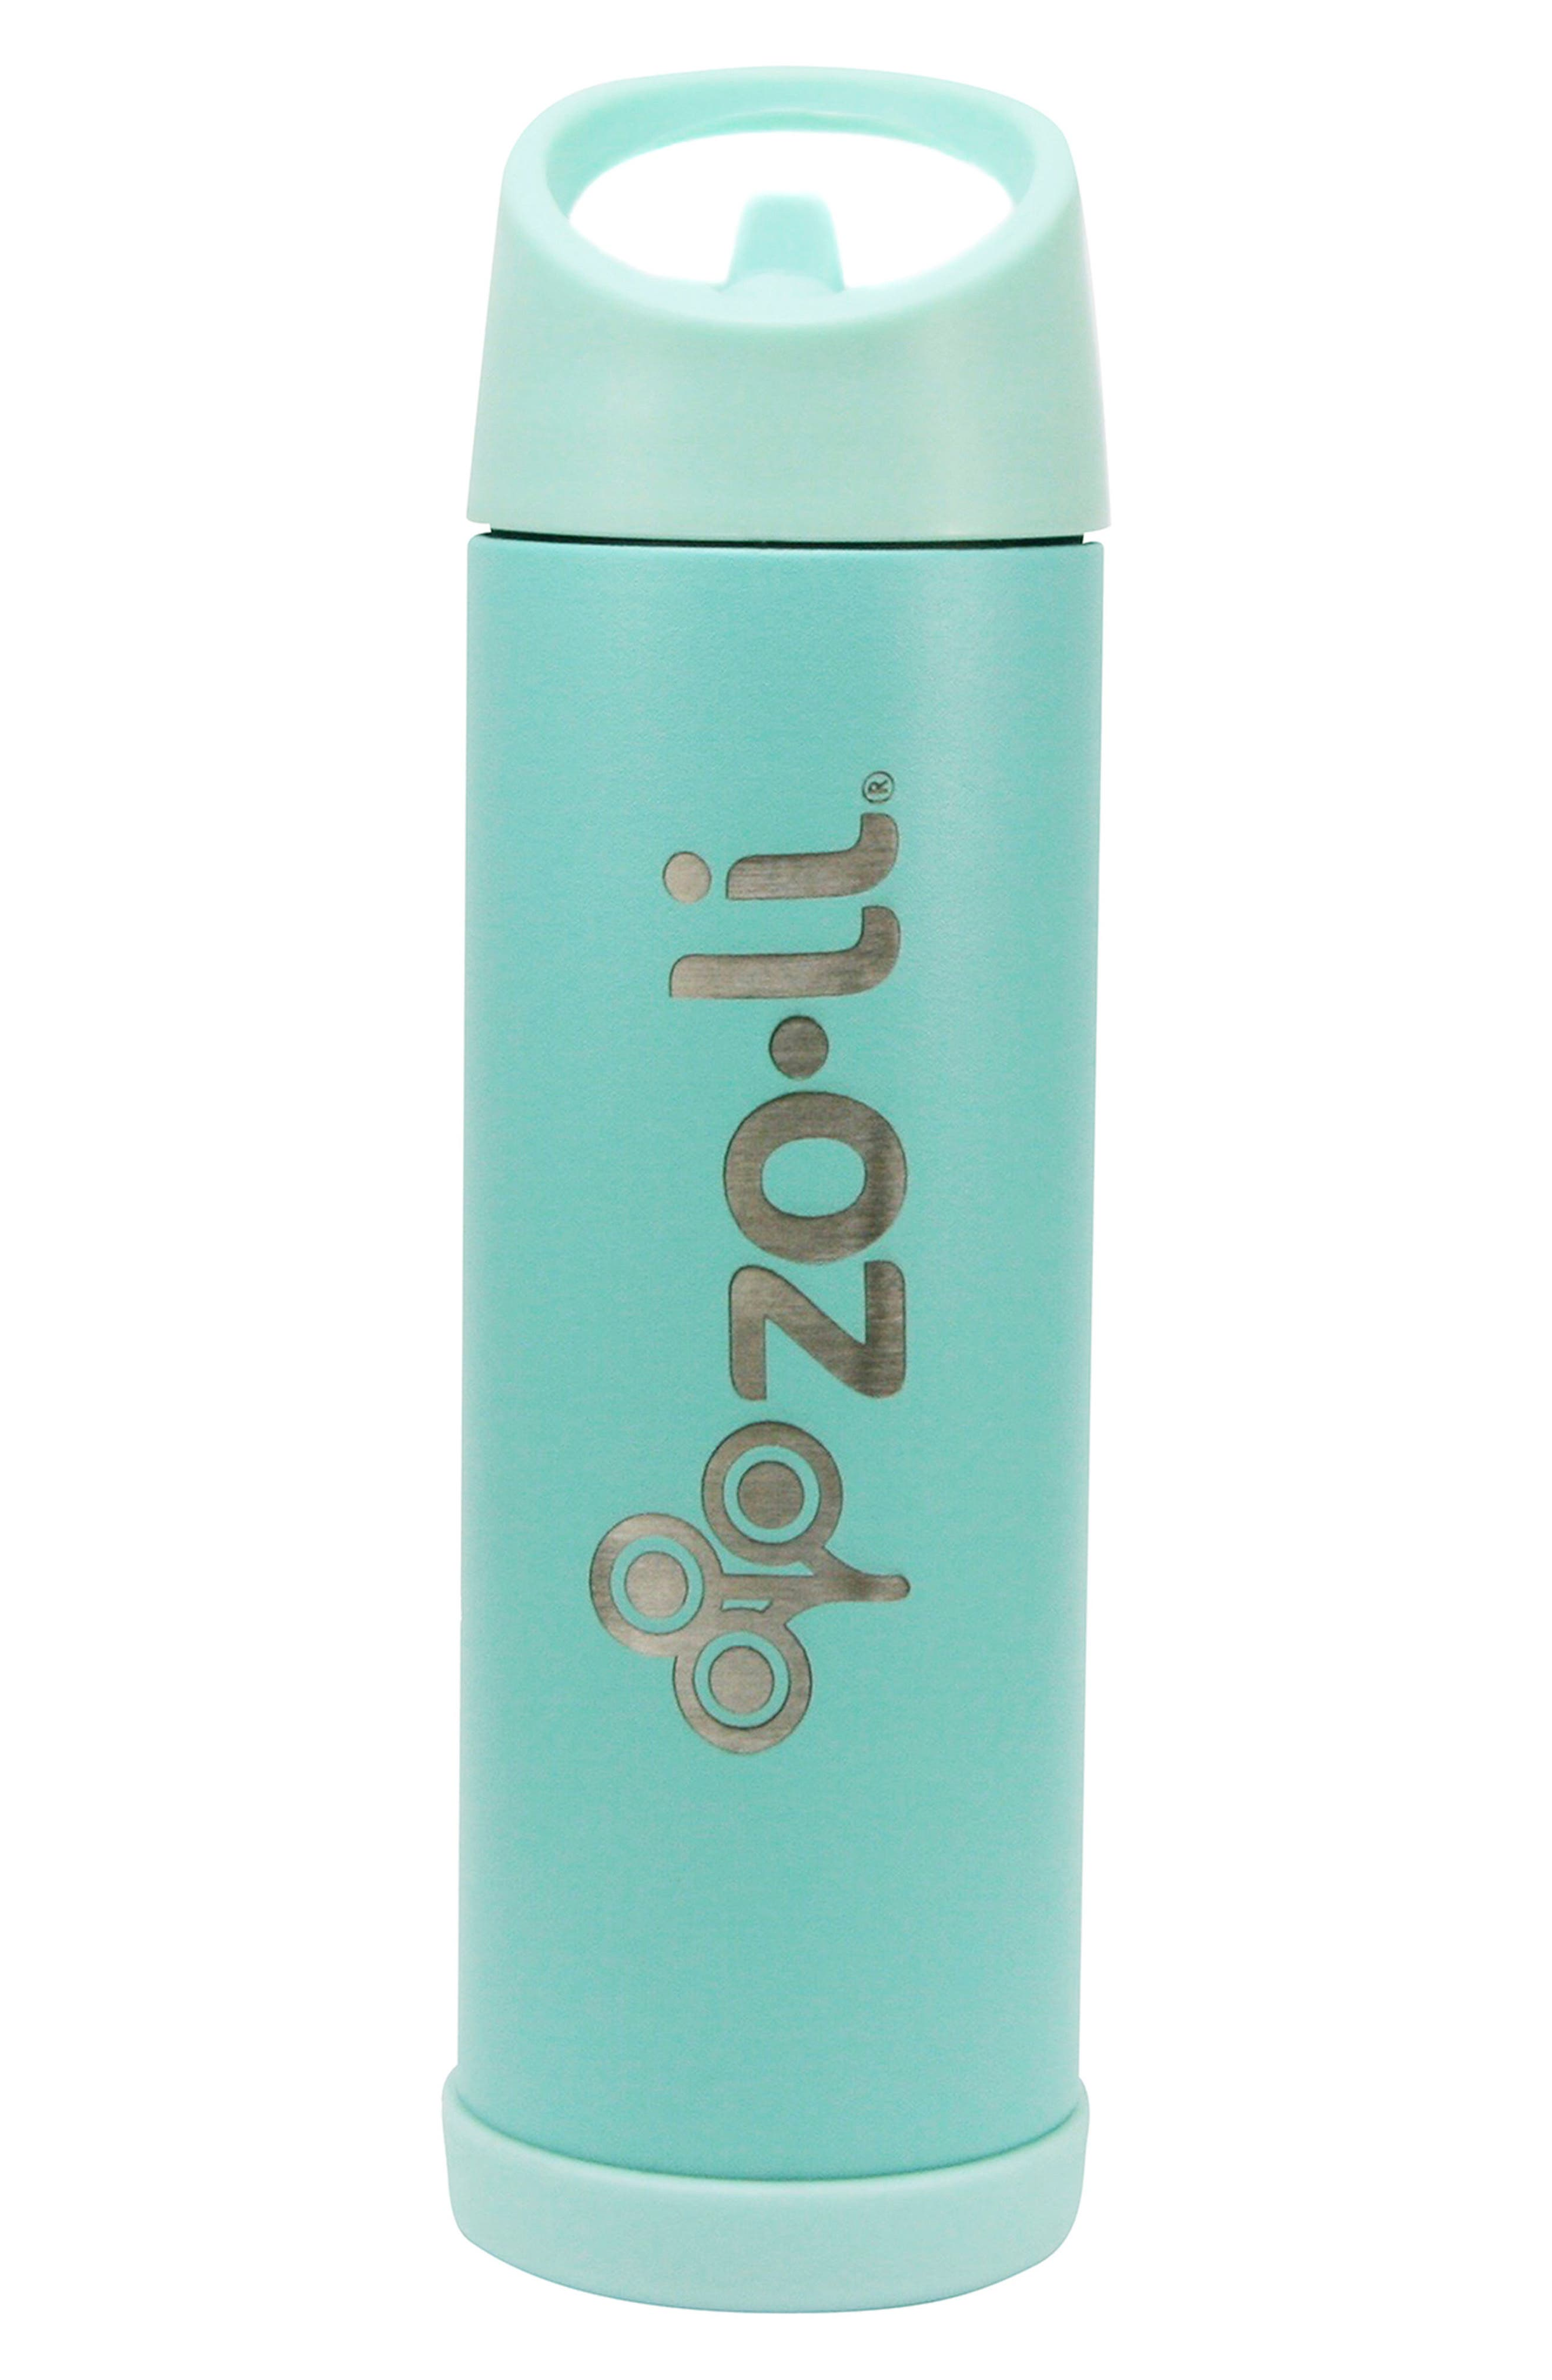 Main Image - ZoLi POW Pip 16-Ounce Insulated Stainless Steel Bottle with Straw